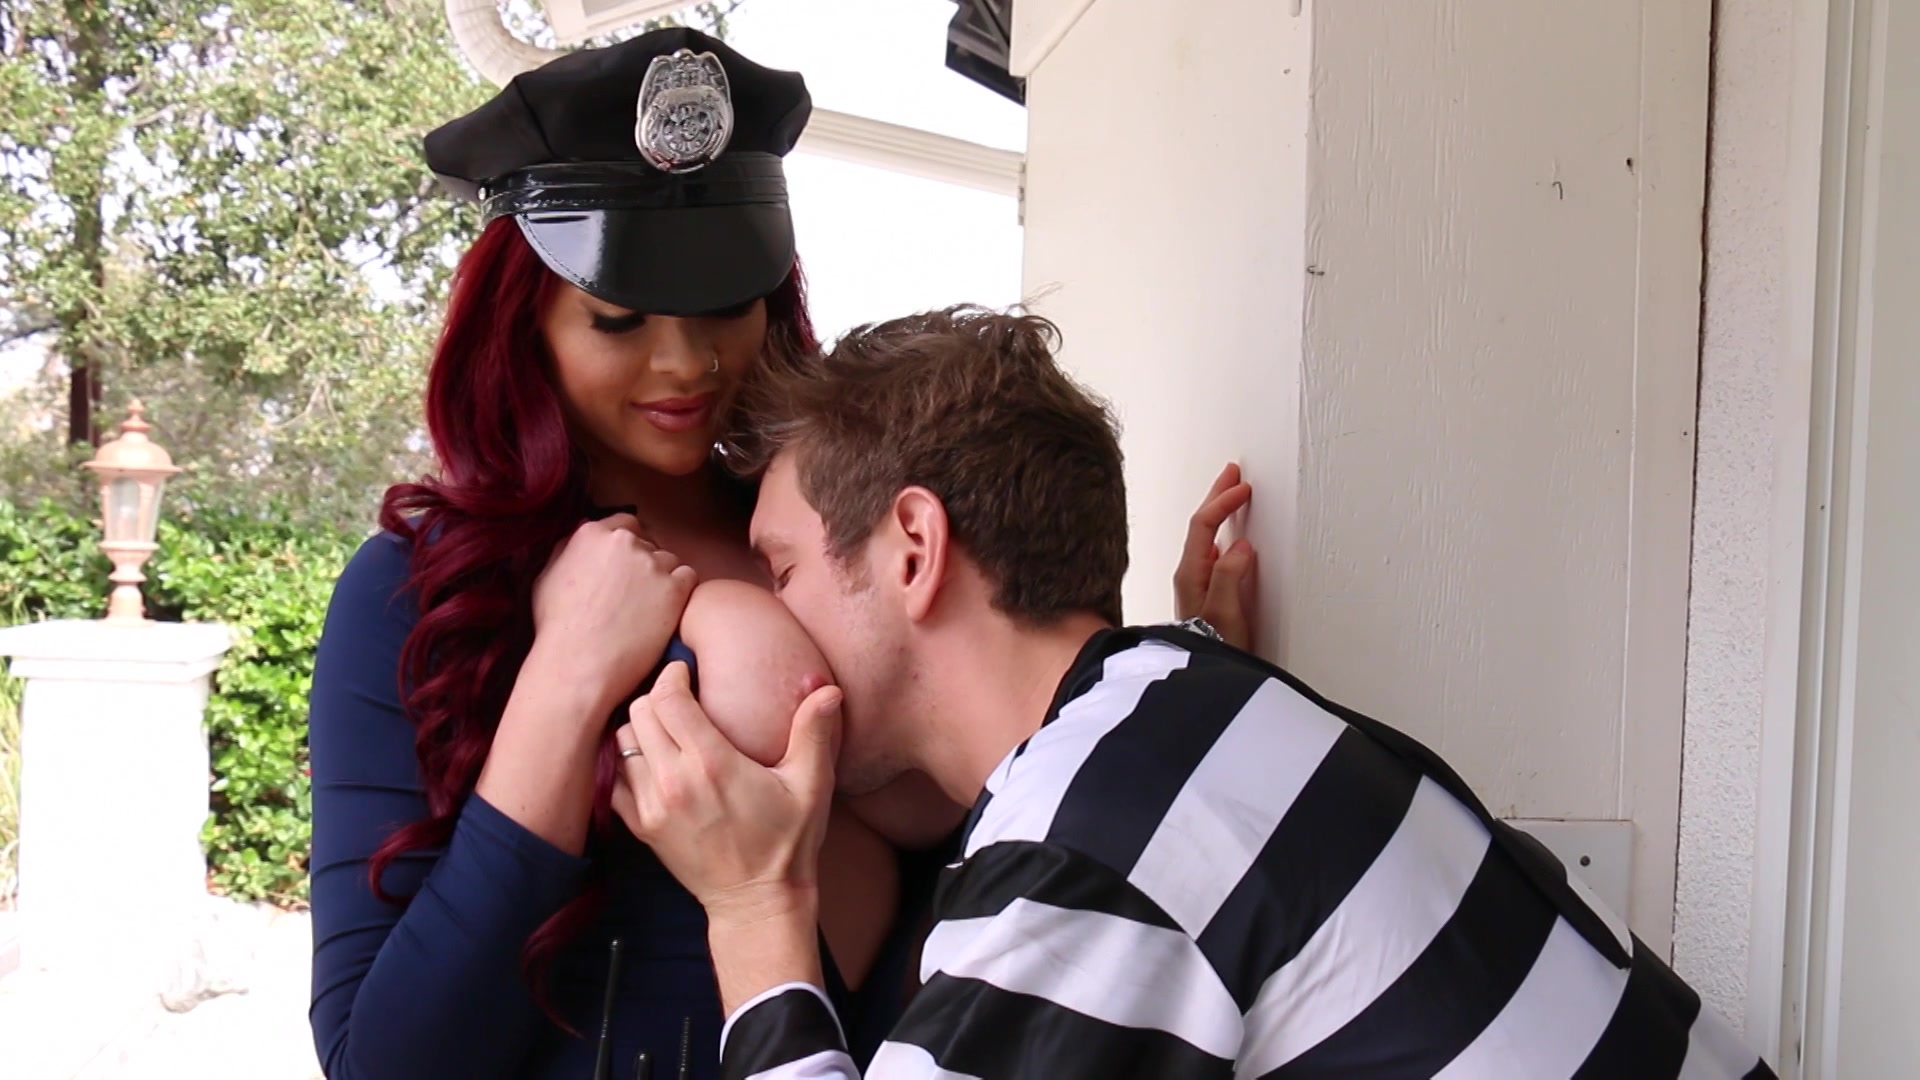 Free Download Of Busty Cops 22